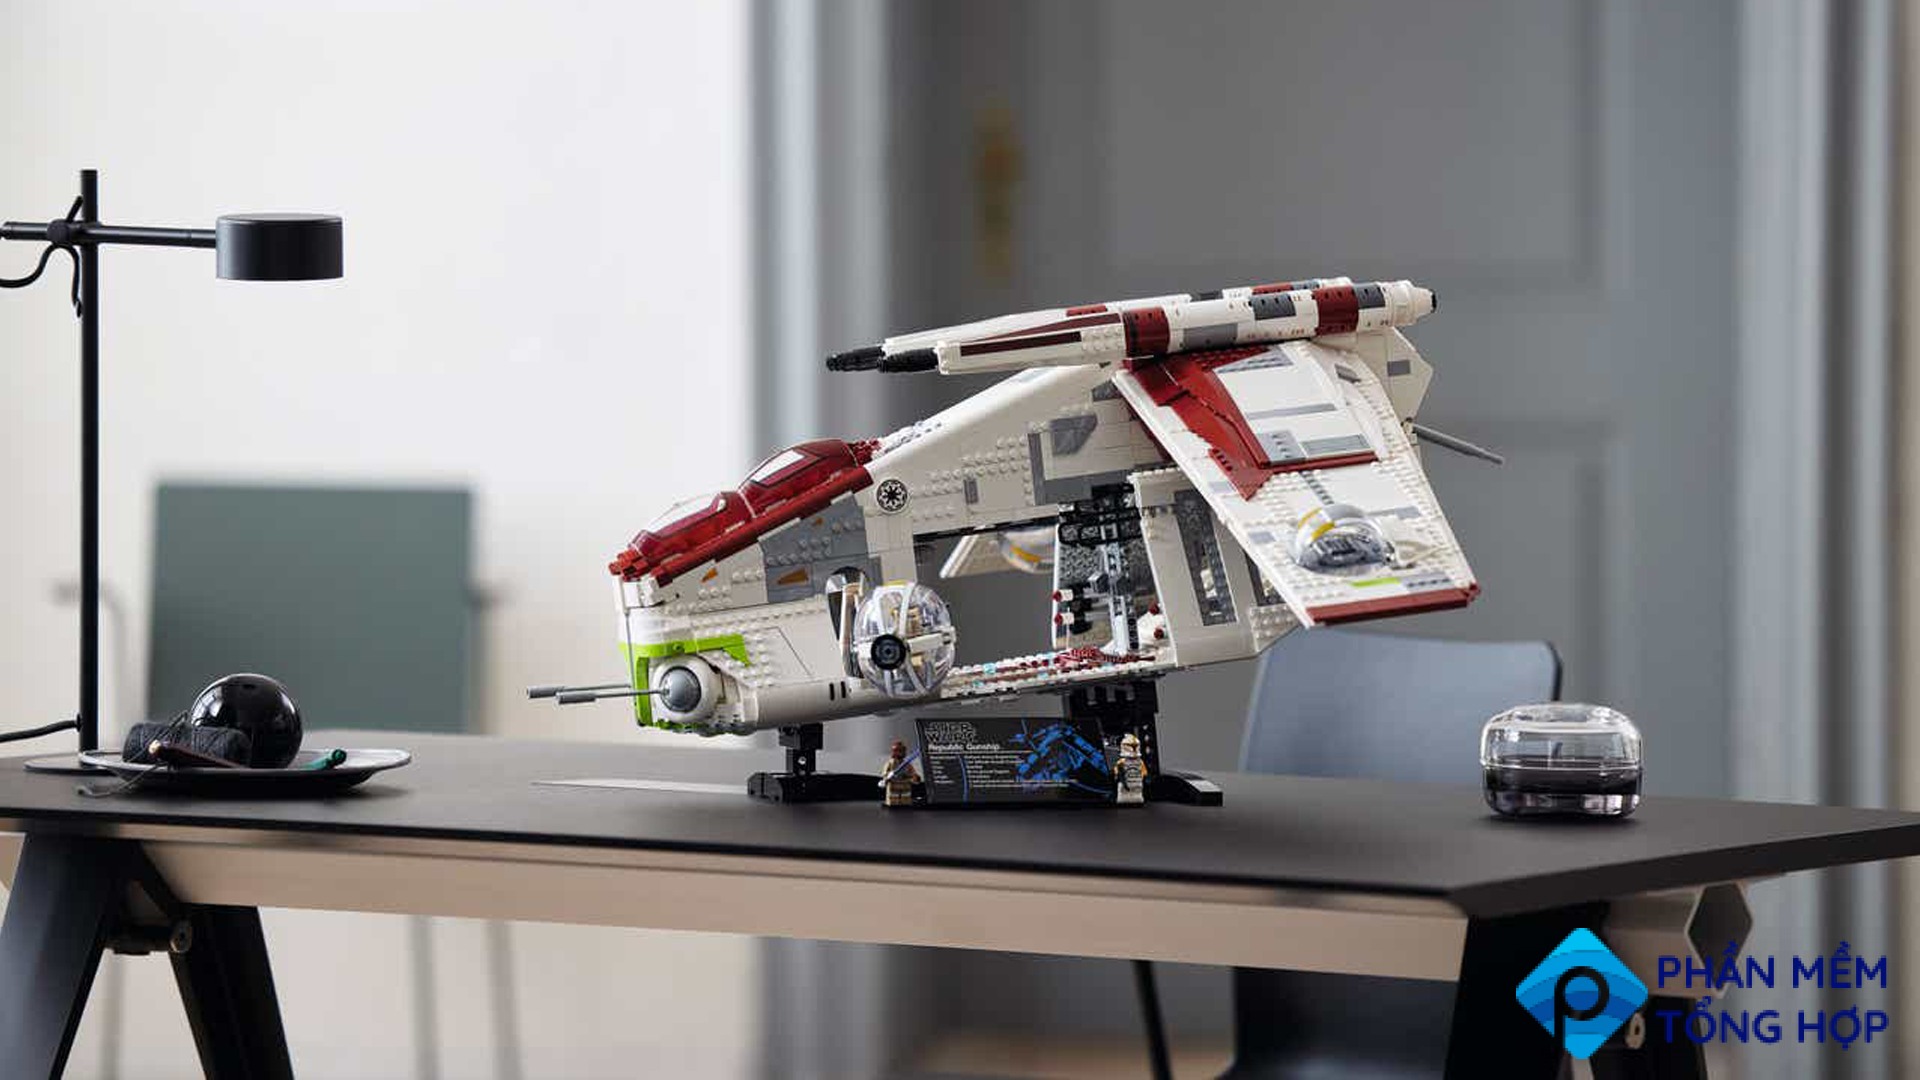 LEGO Reveals the 'Star Wars' Republic Gunship and Wow, It Looks Awesome